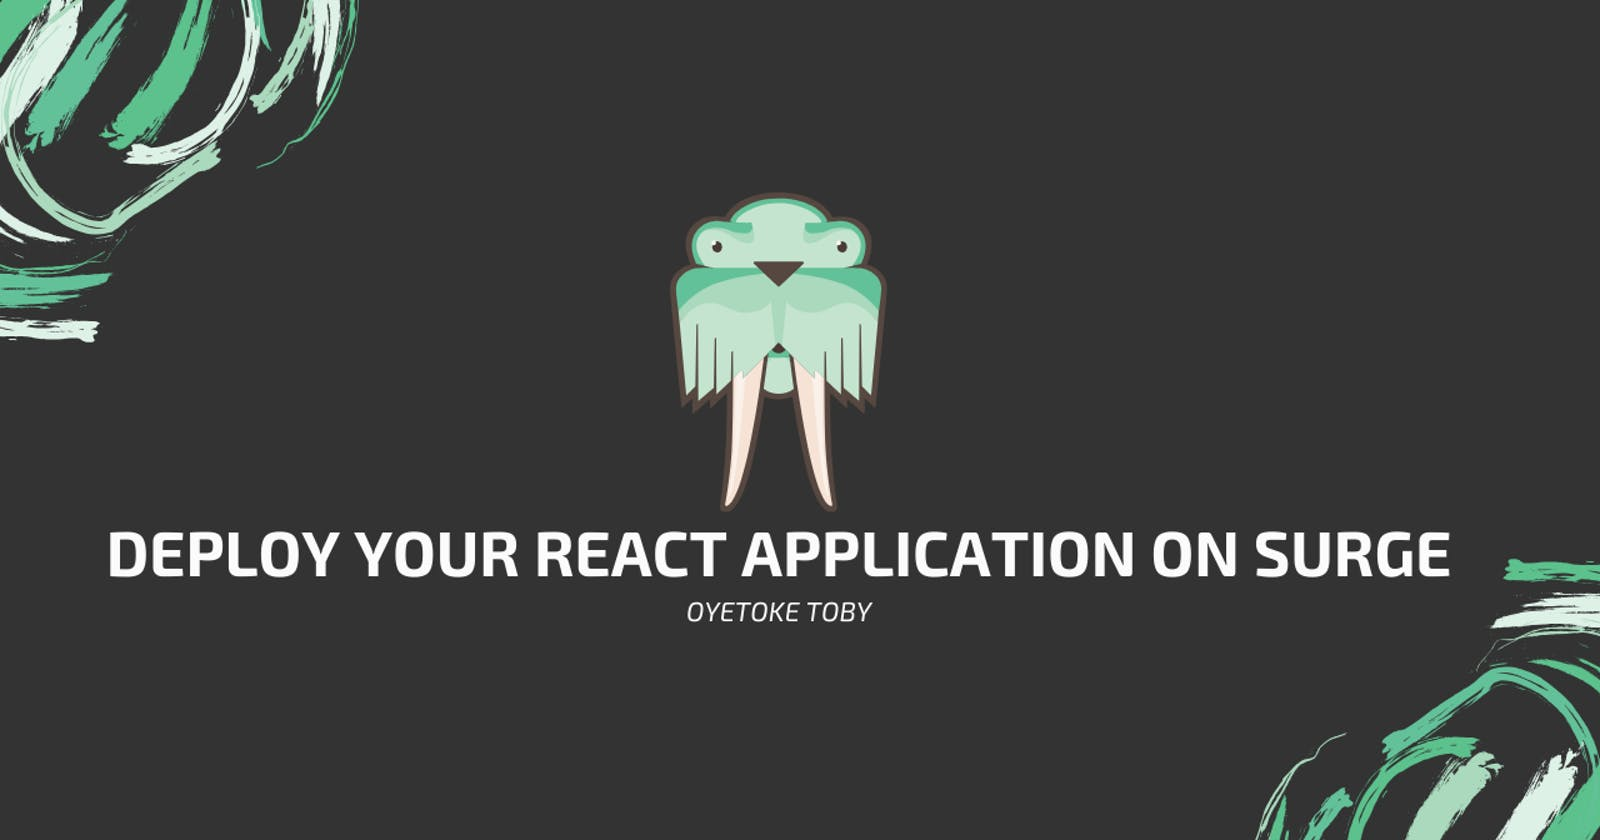 How to Deploy Your React Application on Surge